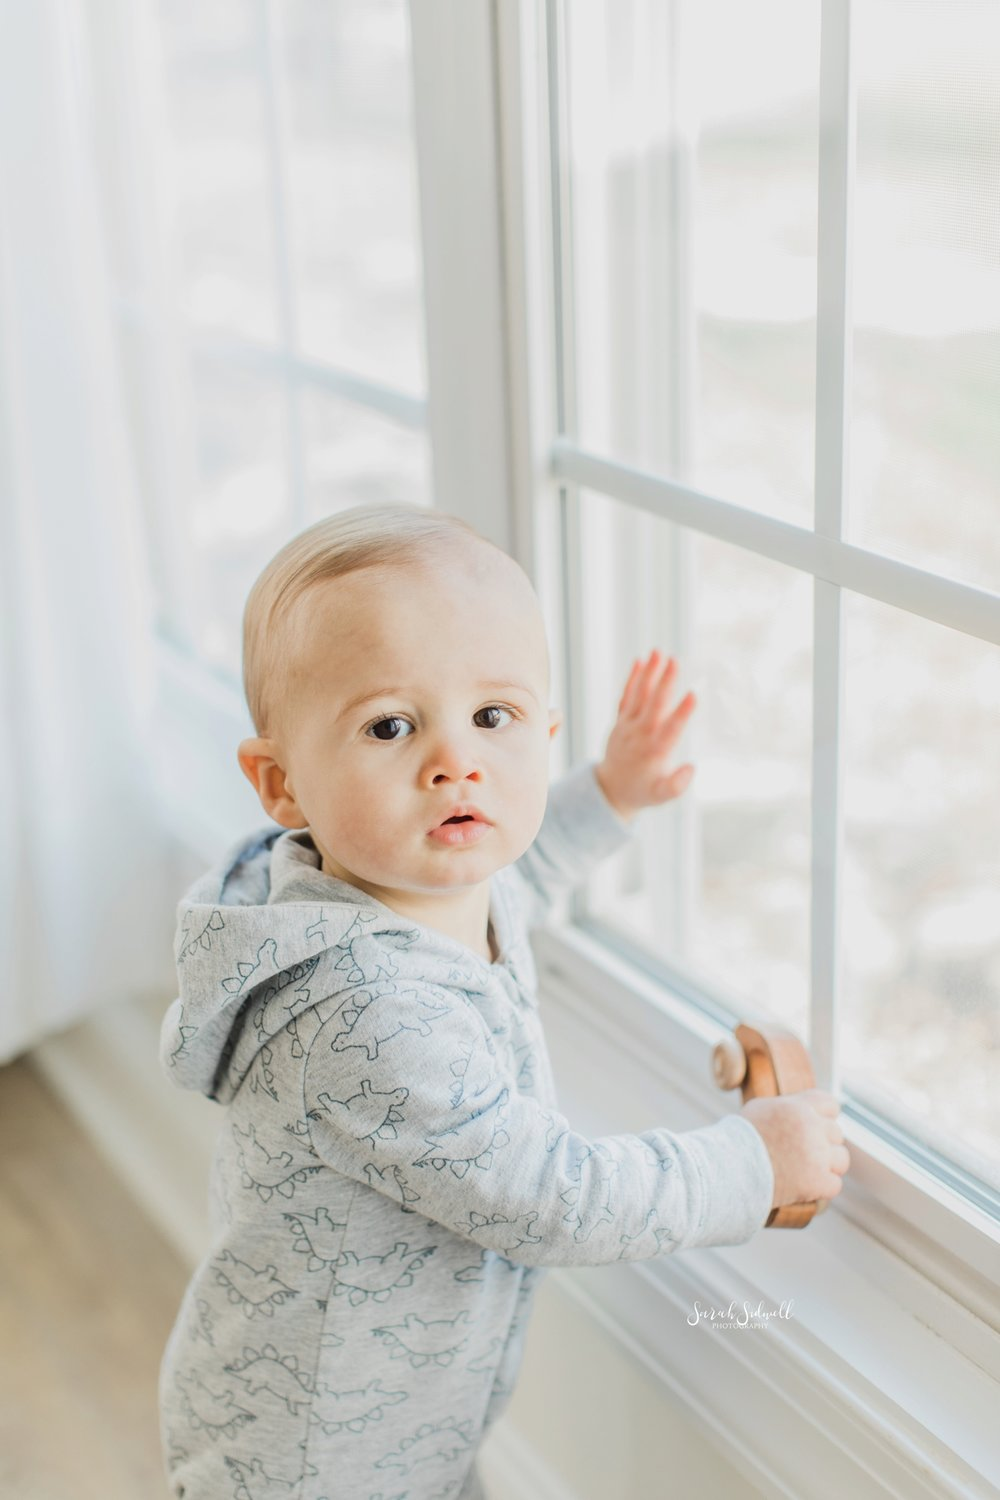 A baby wearing a blue jumper stands at a window and puts his hands up to it.